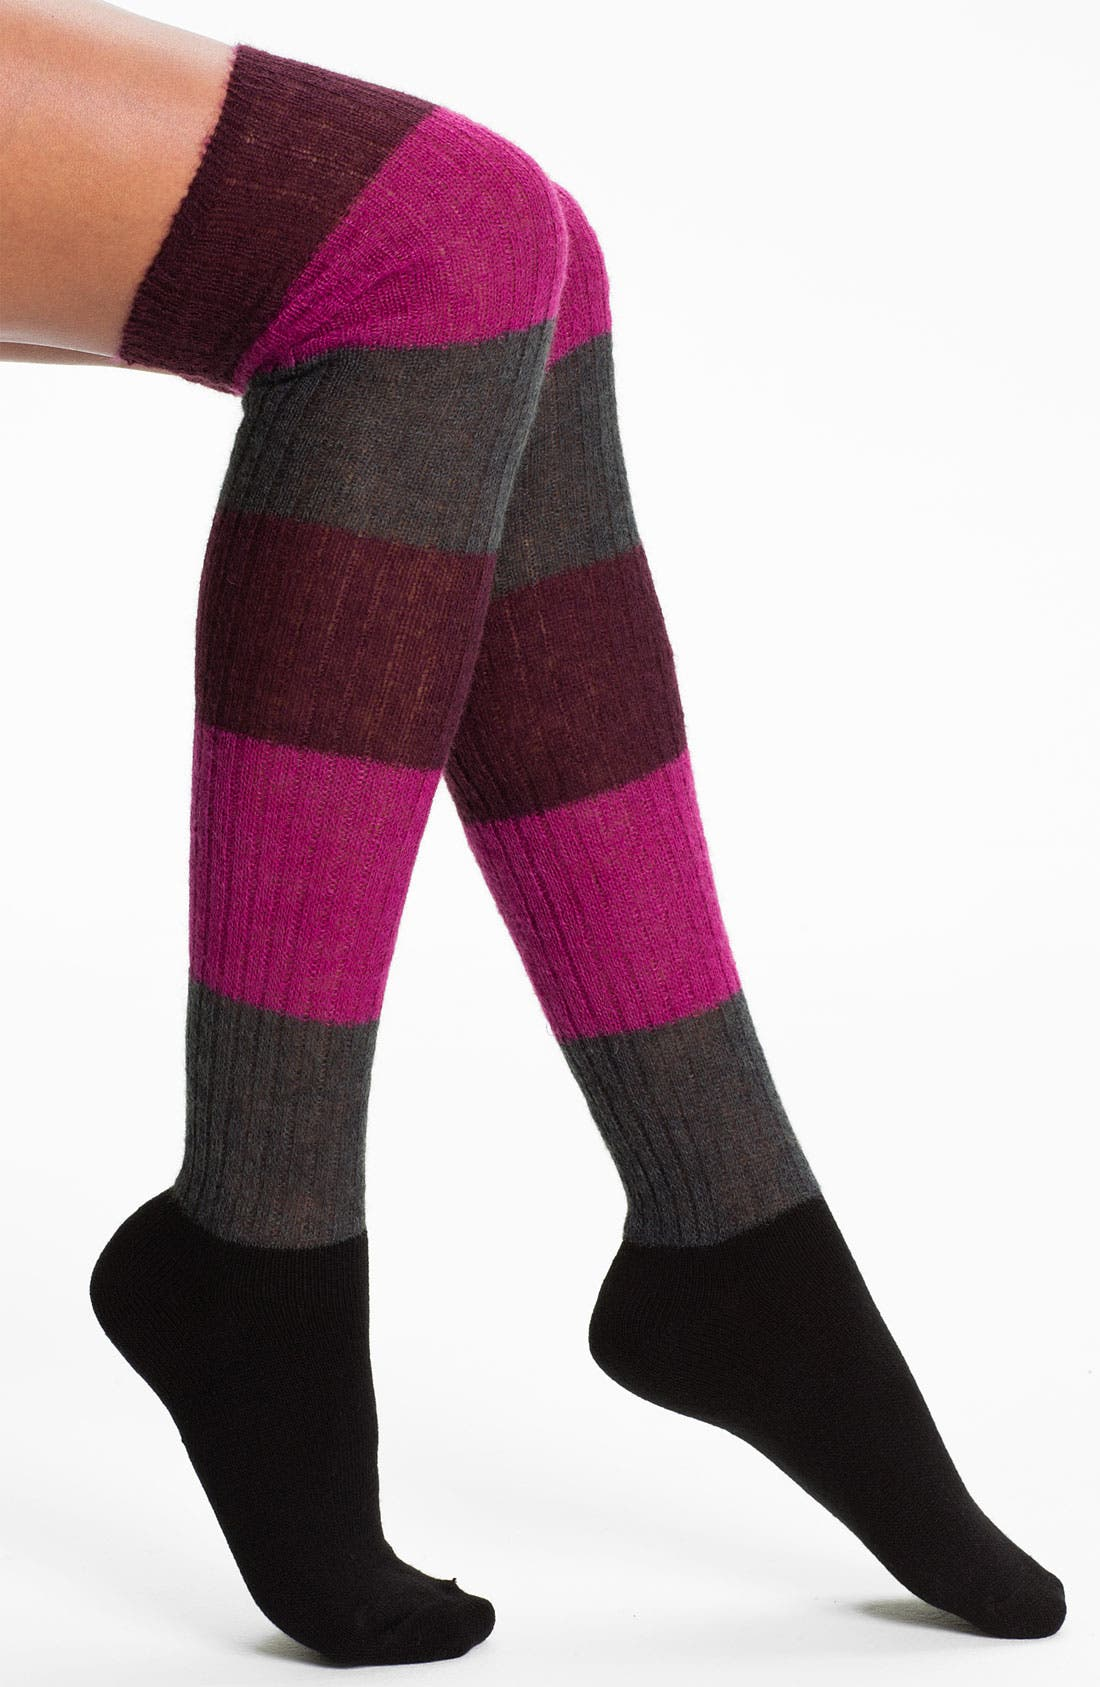 Main Image - Hue Colorblock Over the Knee Socks